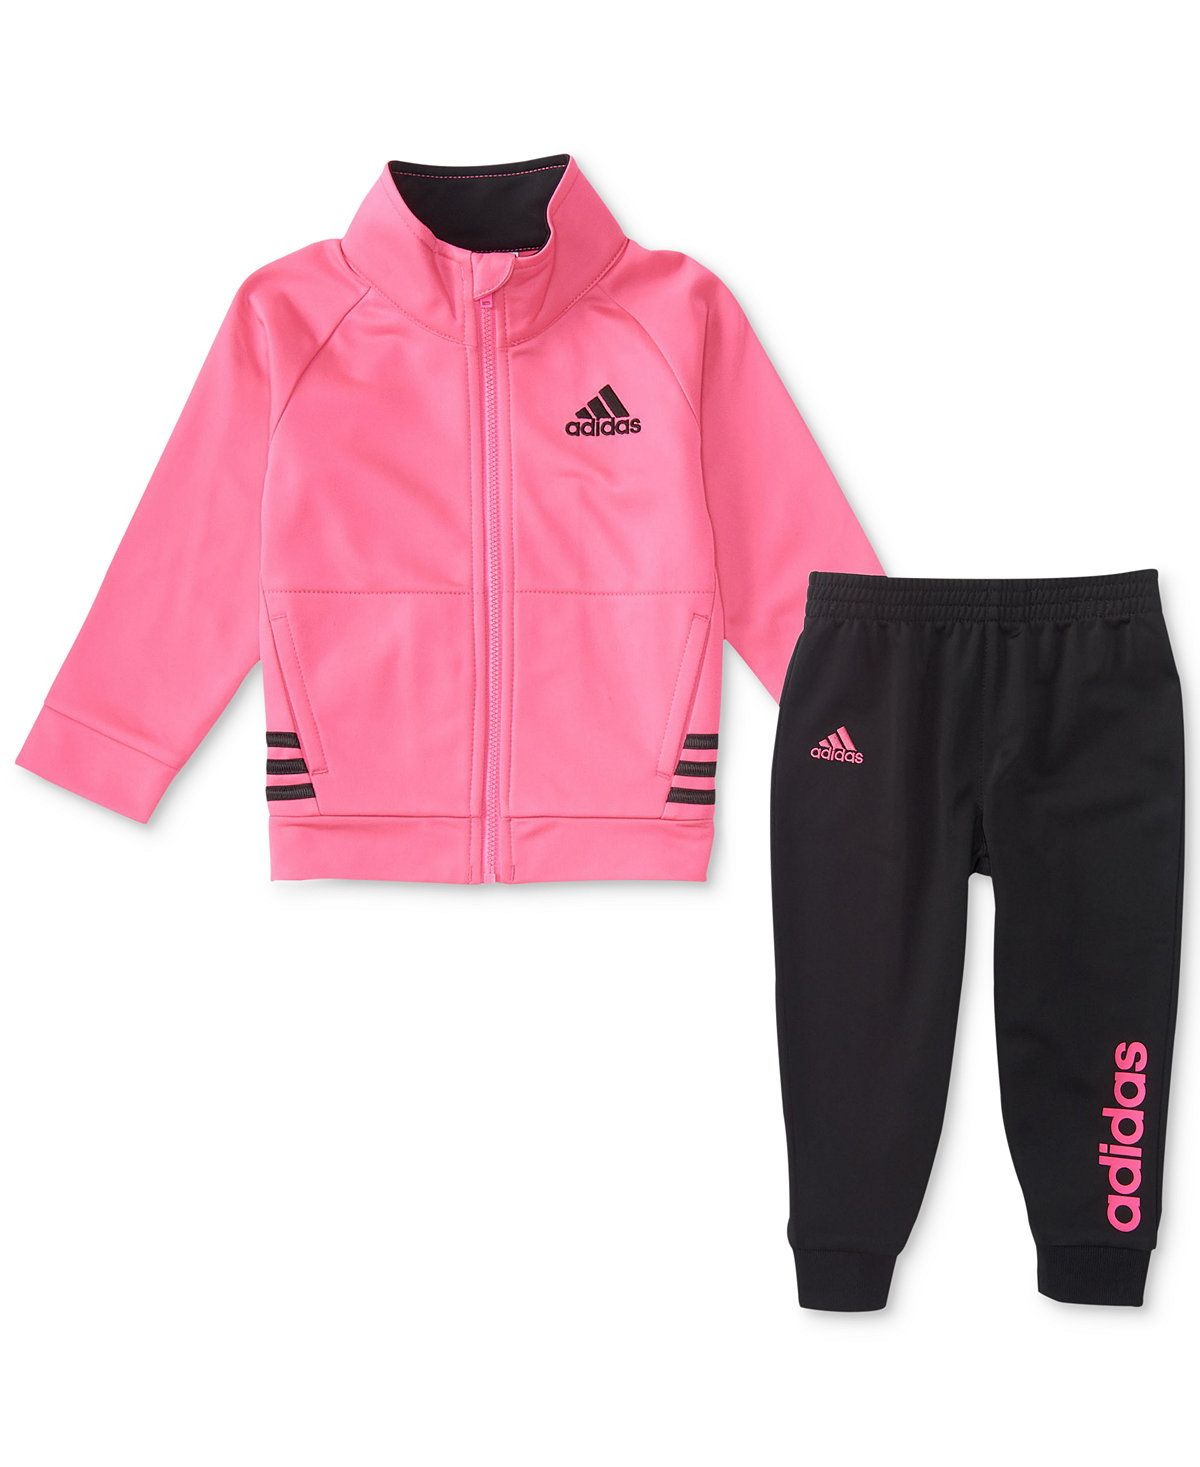 282555ff5 adidas 2-Pc. Tricot Jacket   Jogger Pants Set